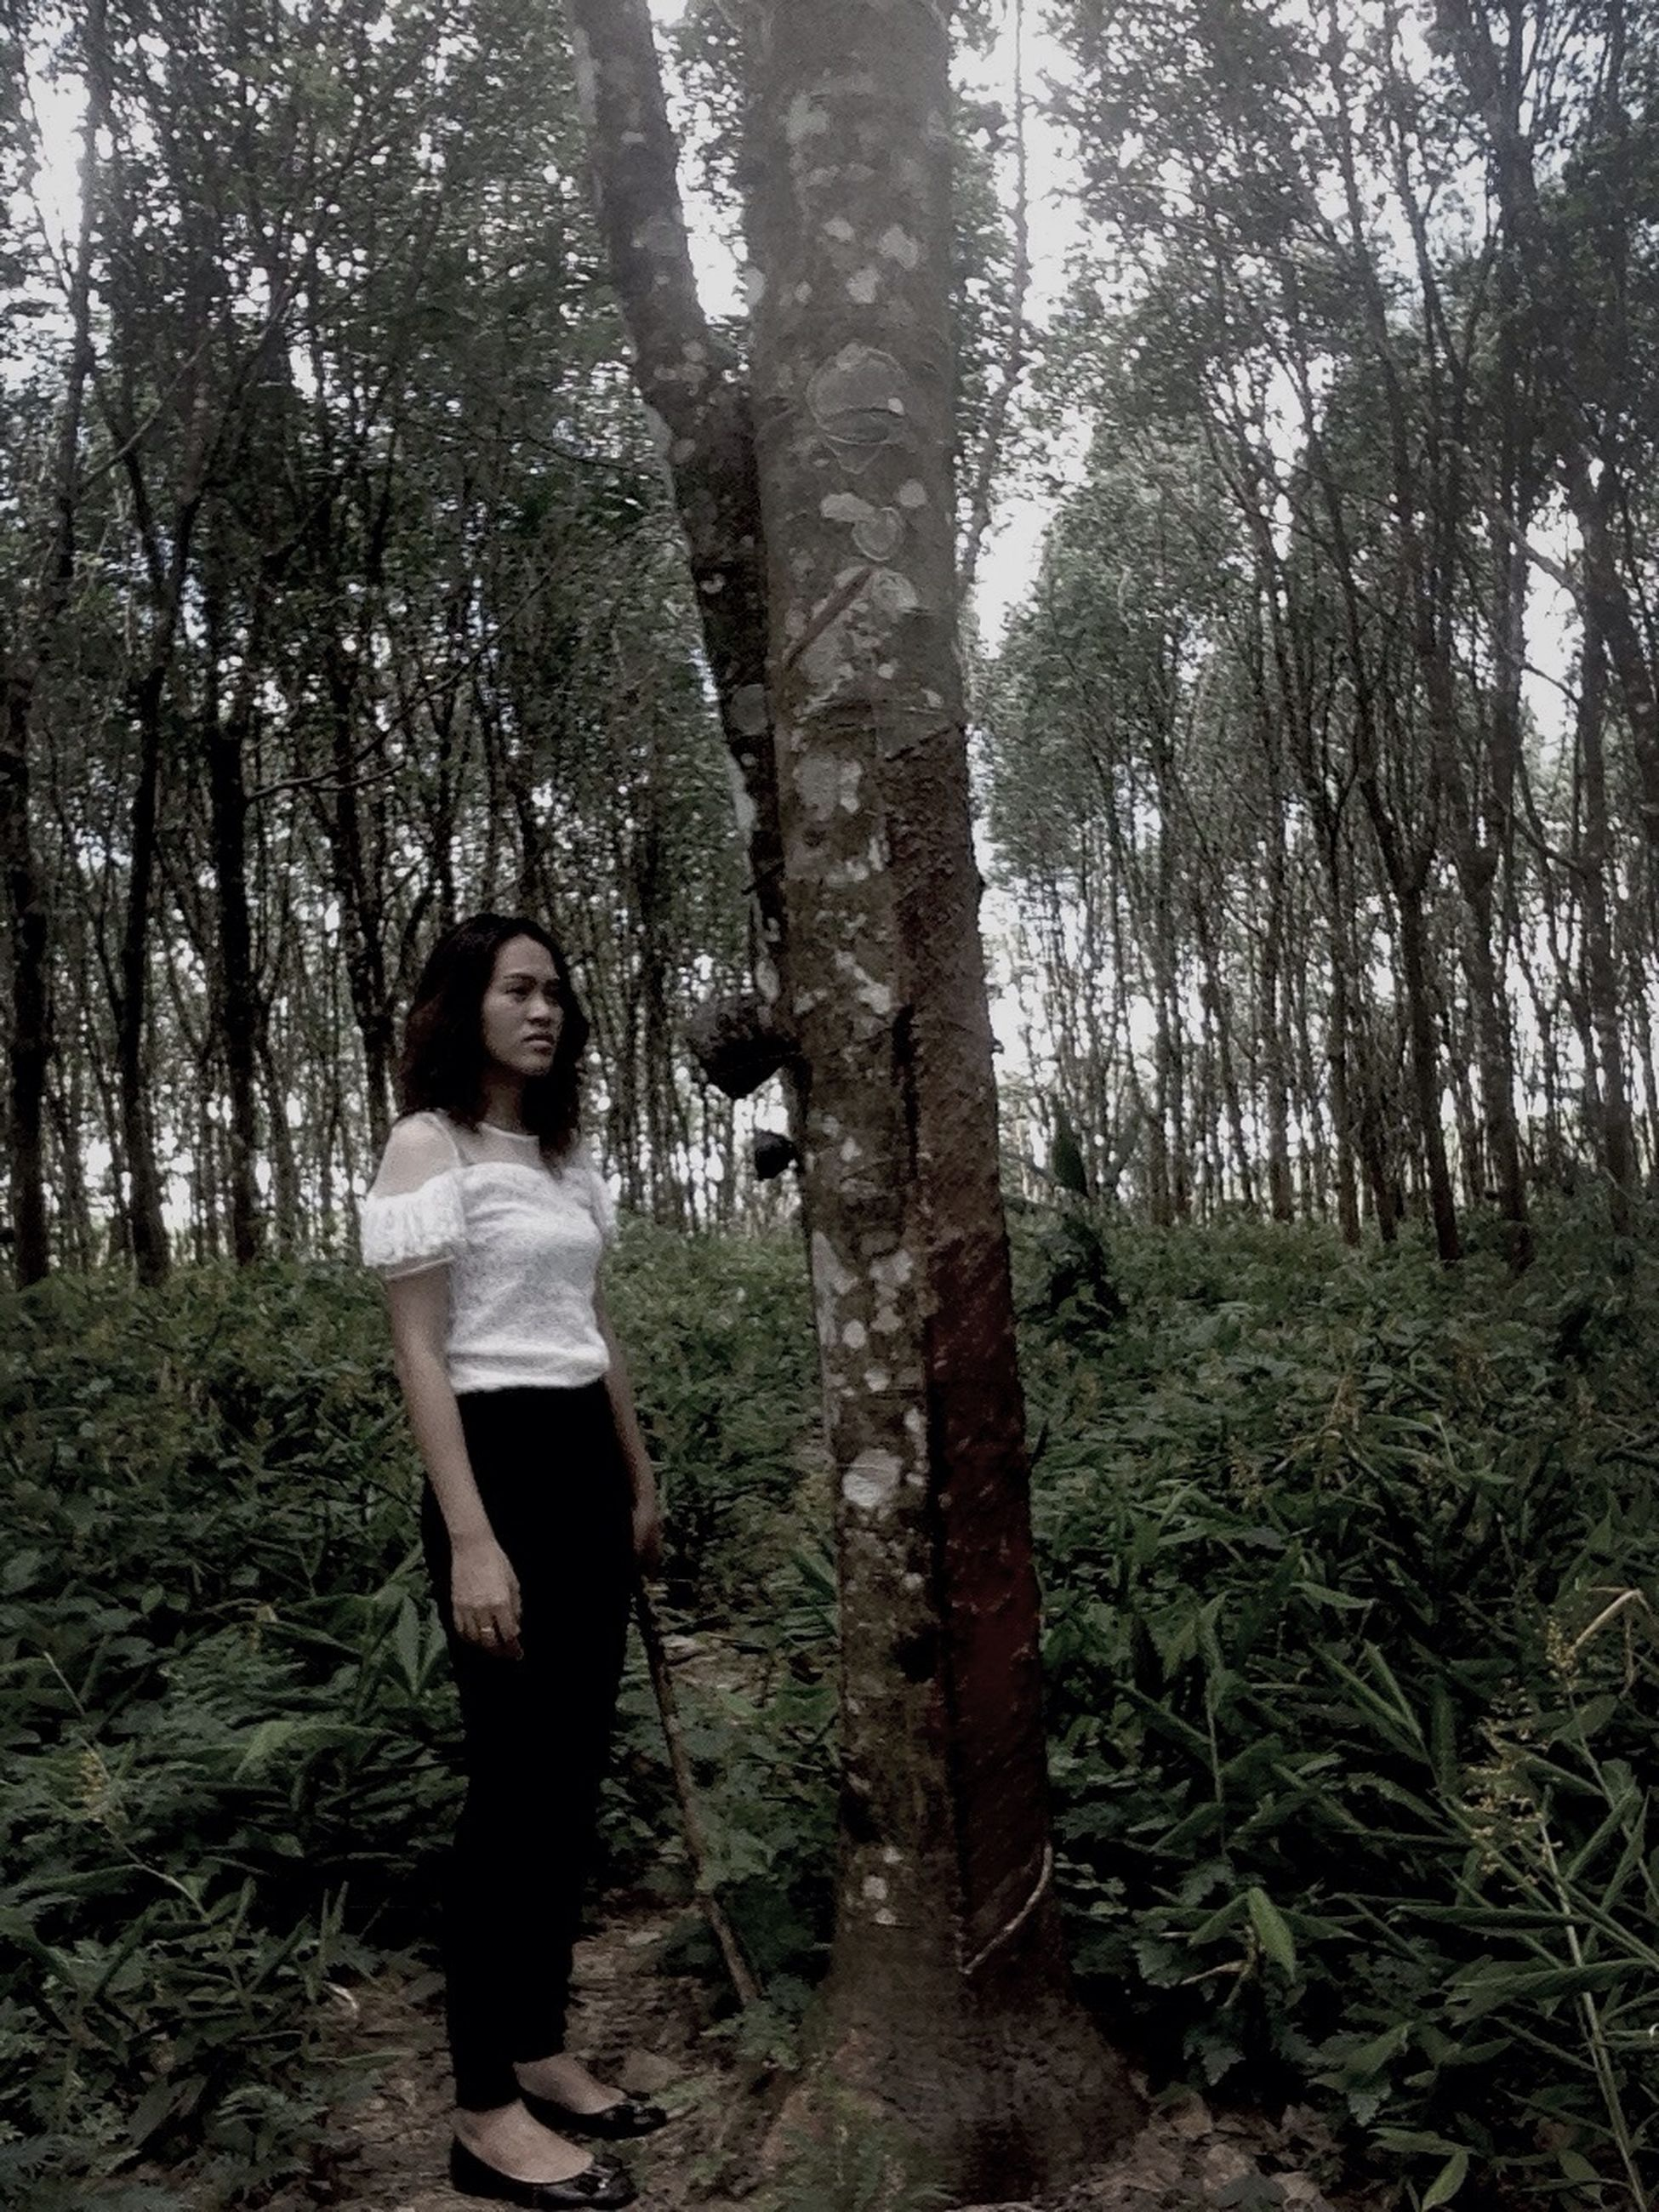 tree, forest, full length, lifestyles, leisure activity, casual clothing, tree trunk, standing, growth, tranquility, woodland, nature, tranquil scene, rear view, branch, three quarter length, beauty in nature, person